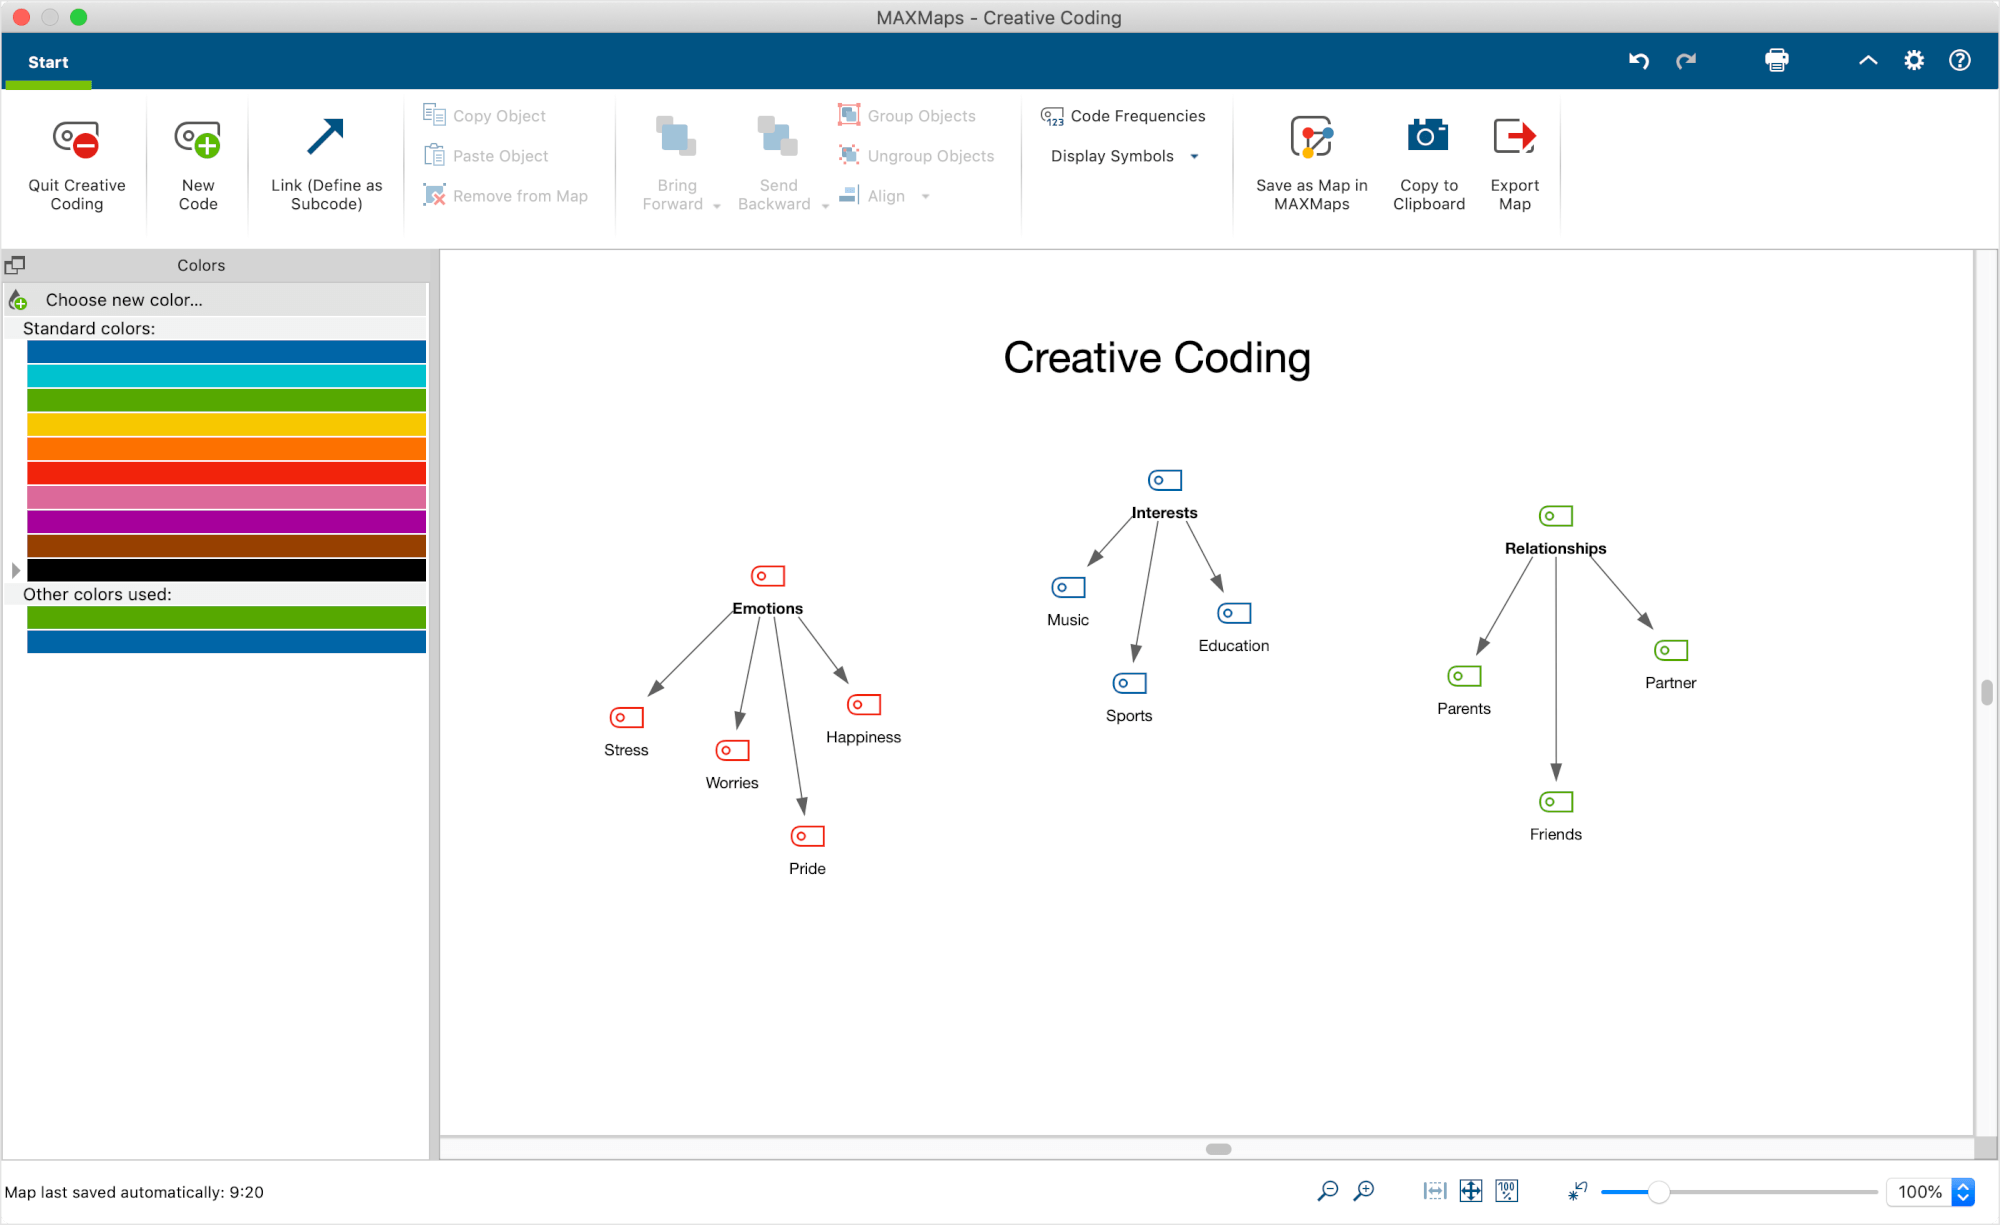 Organizing Codes on the MAXMaps workaspace